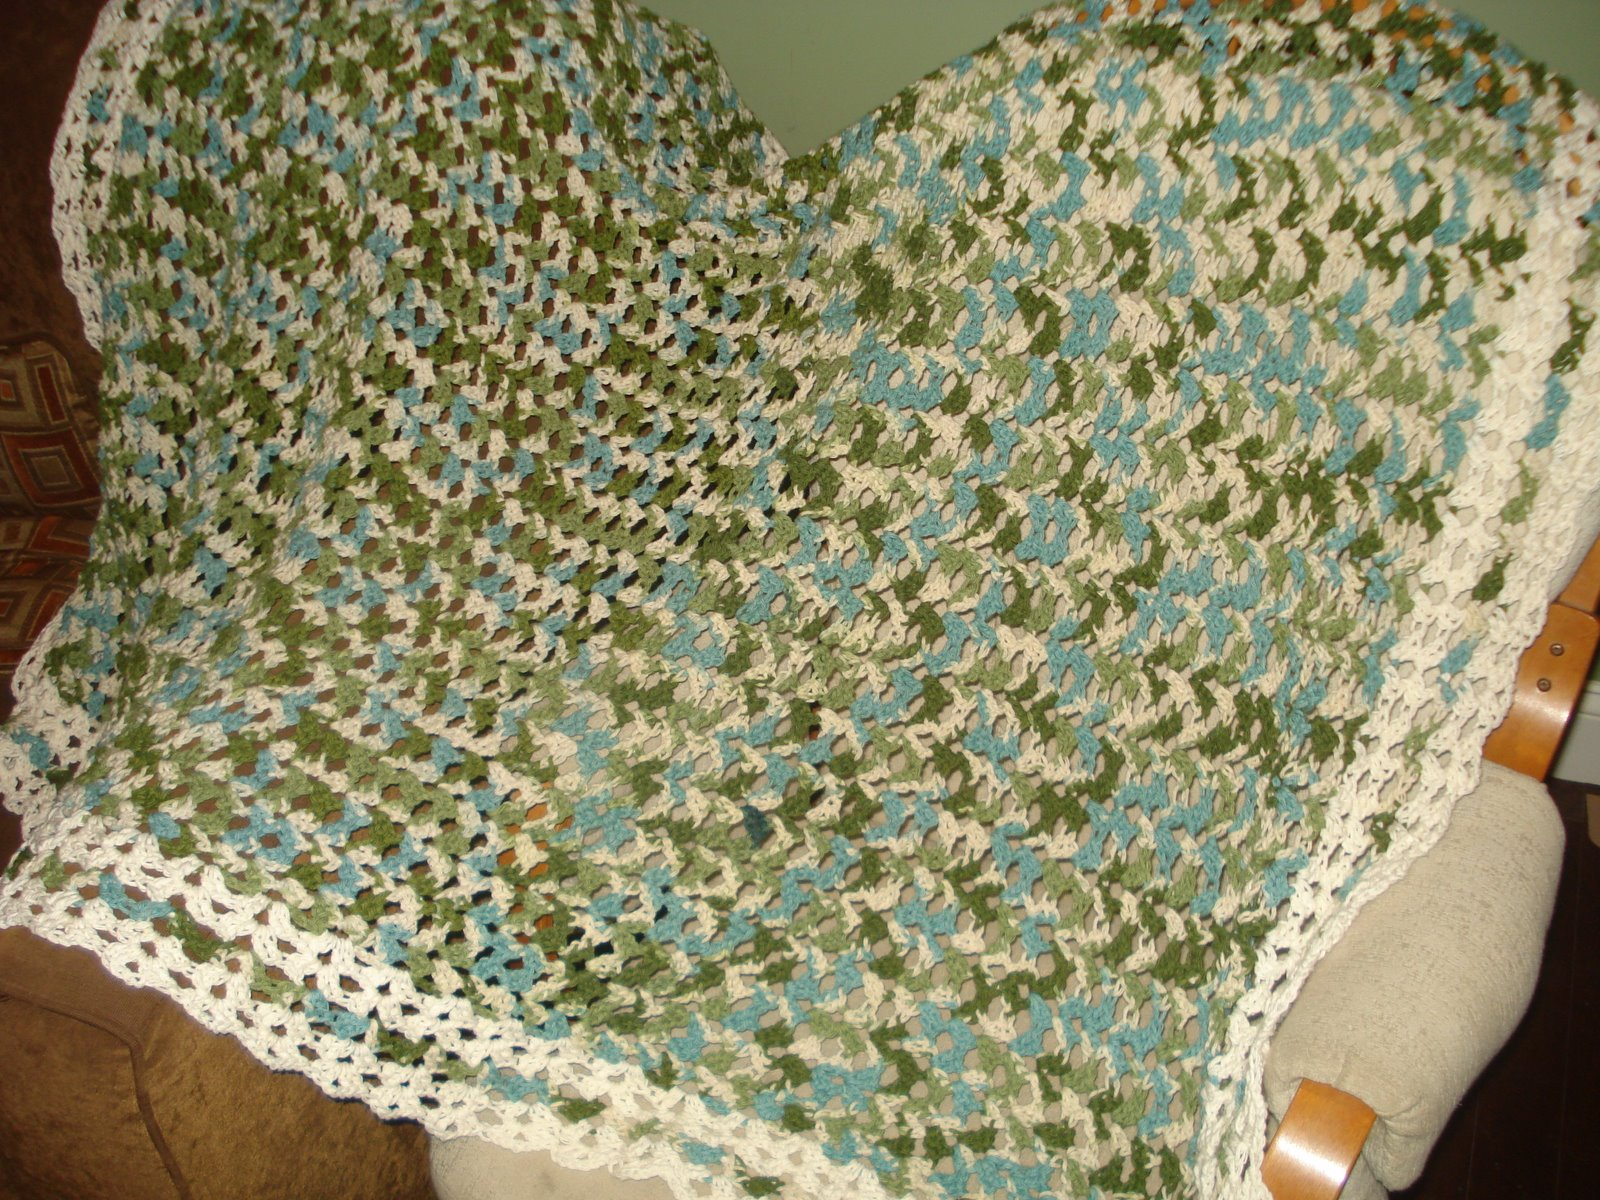 Crochet Afghan Pattern Variegated Yarn : A Ginger Mess: Crocheted Blanket with Variegated Yarn